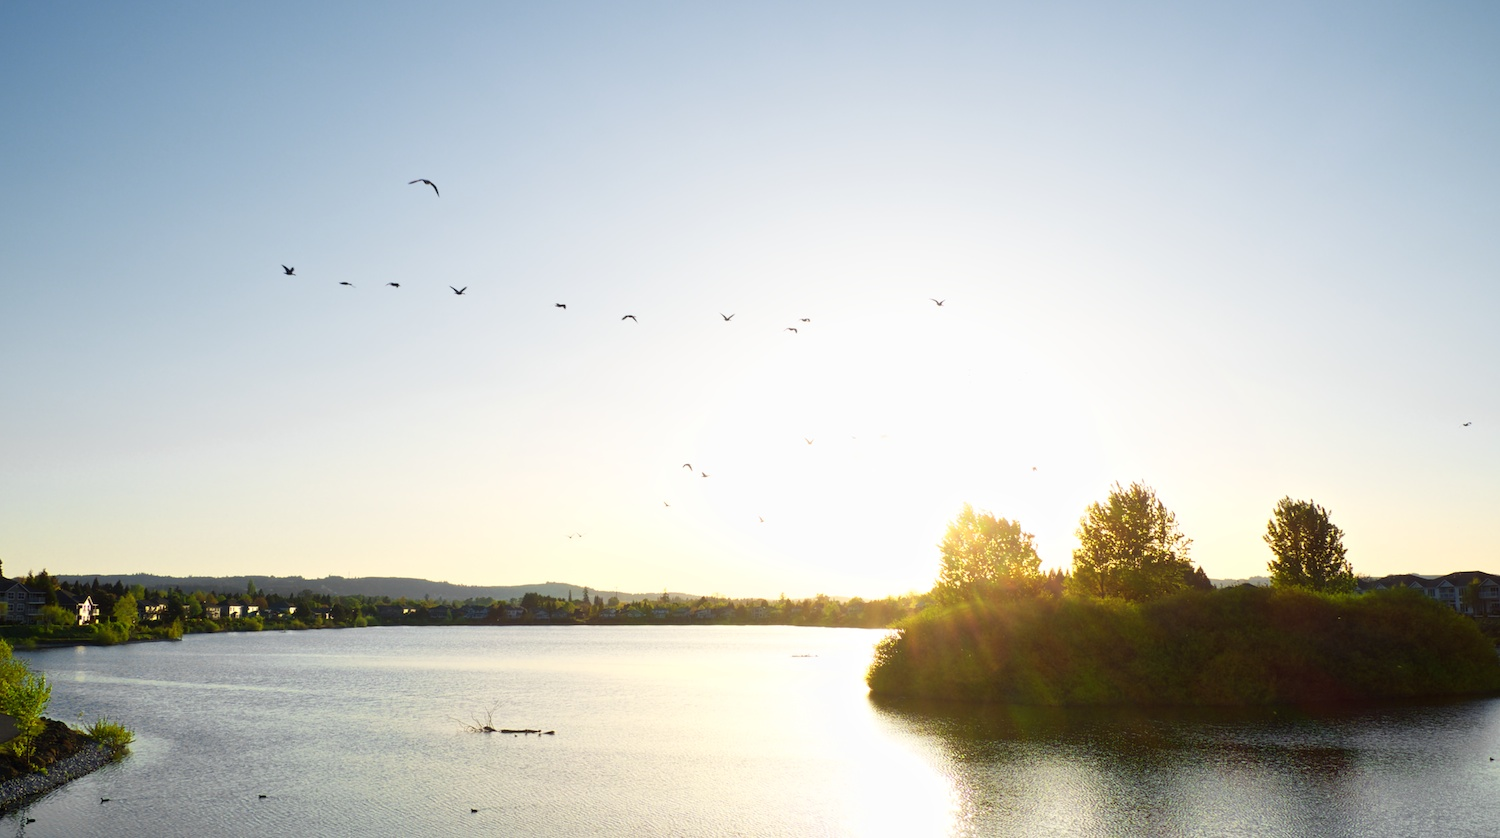 Geese landing at Staats Lake, Keizer, Oregon. FujiFilm XE-1, 18-55mm.